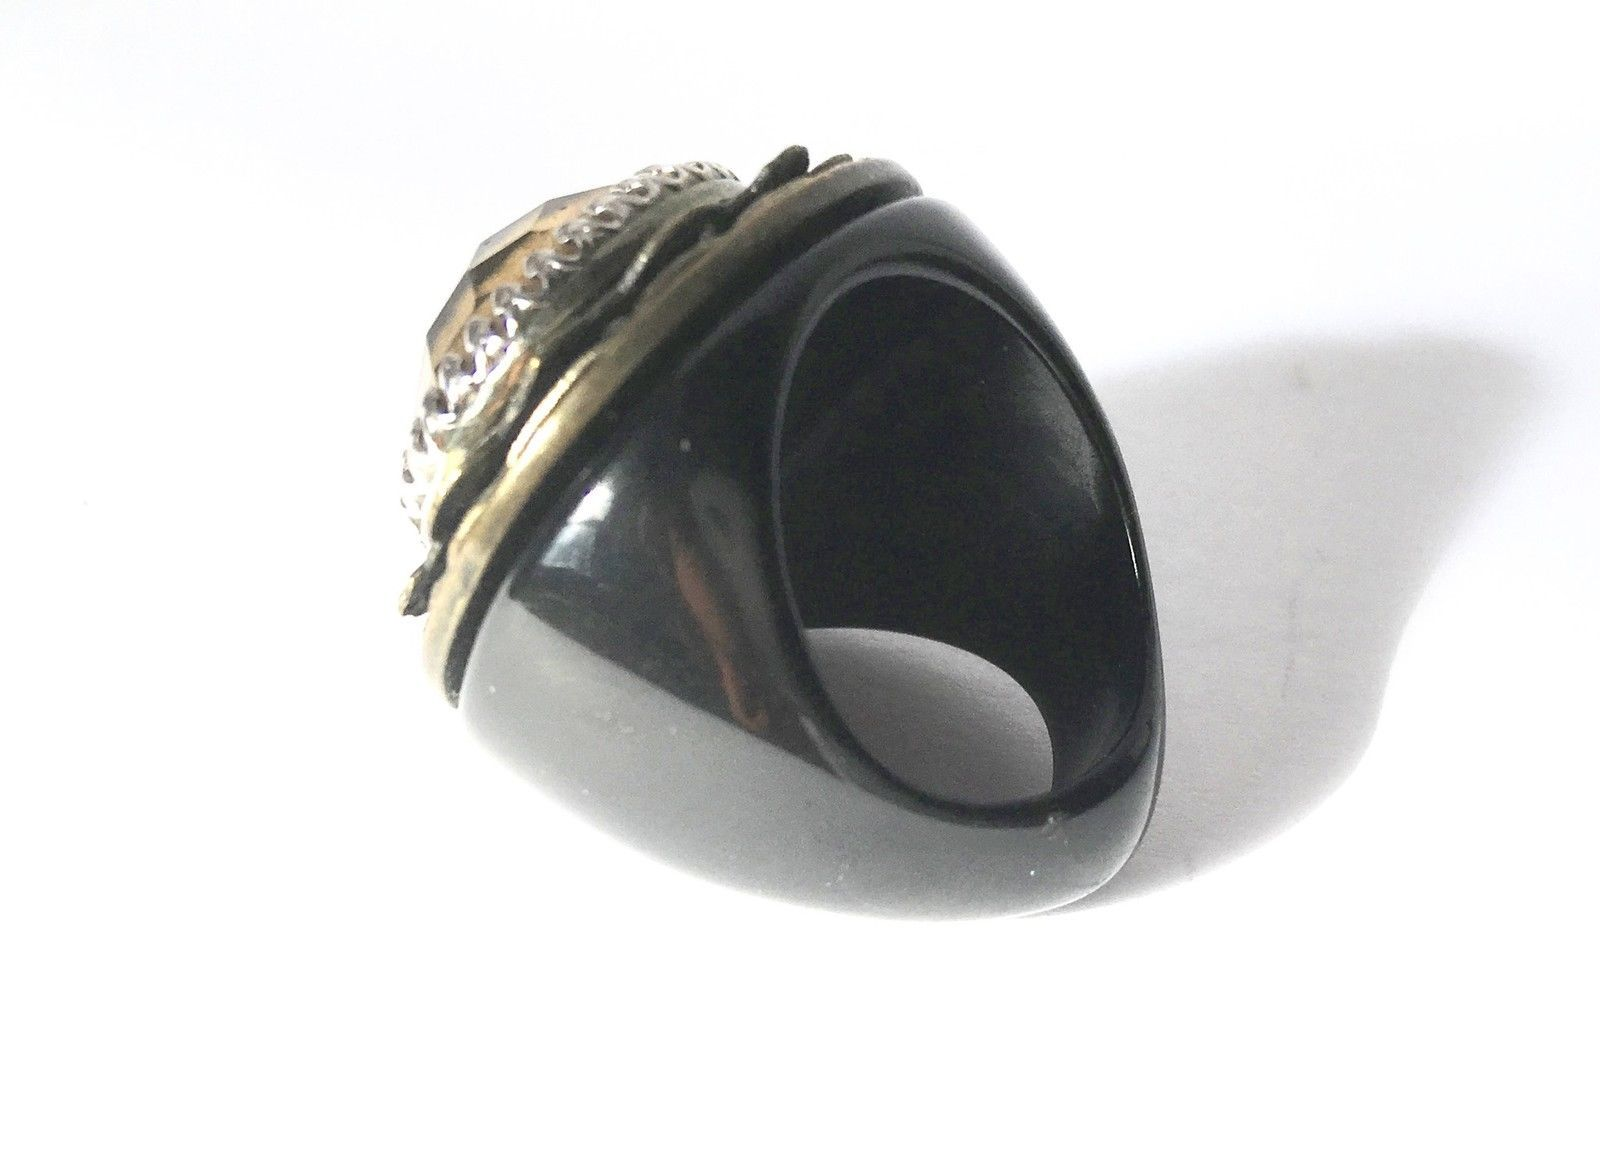 Primary image for Unique Cocktail Ring Golden Top Black Plastic Band Size 6.5 Massive Statement Je